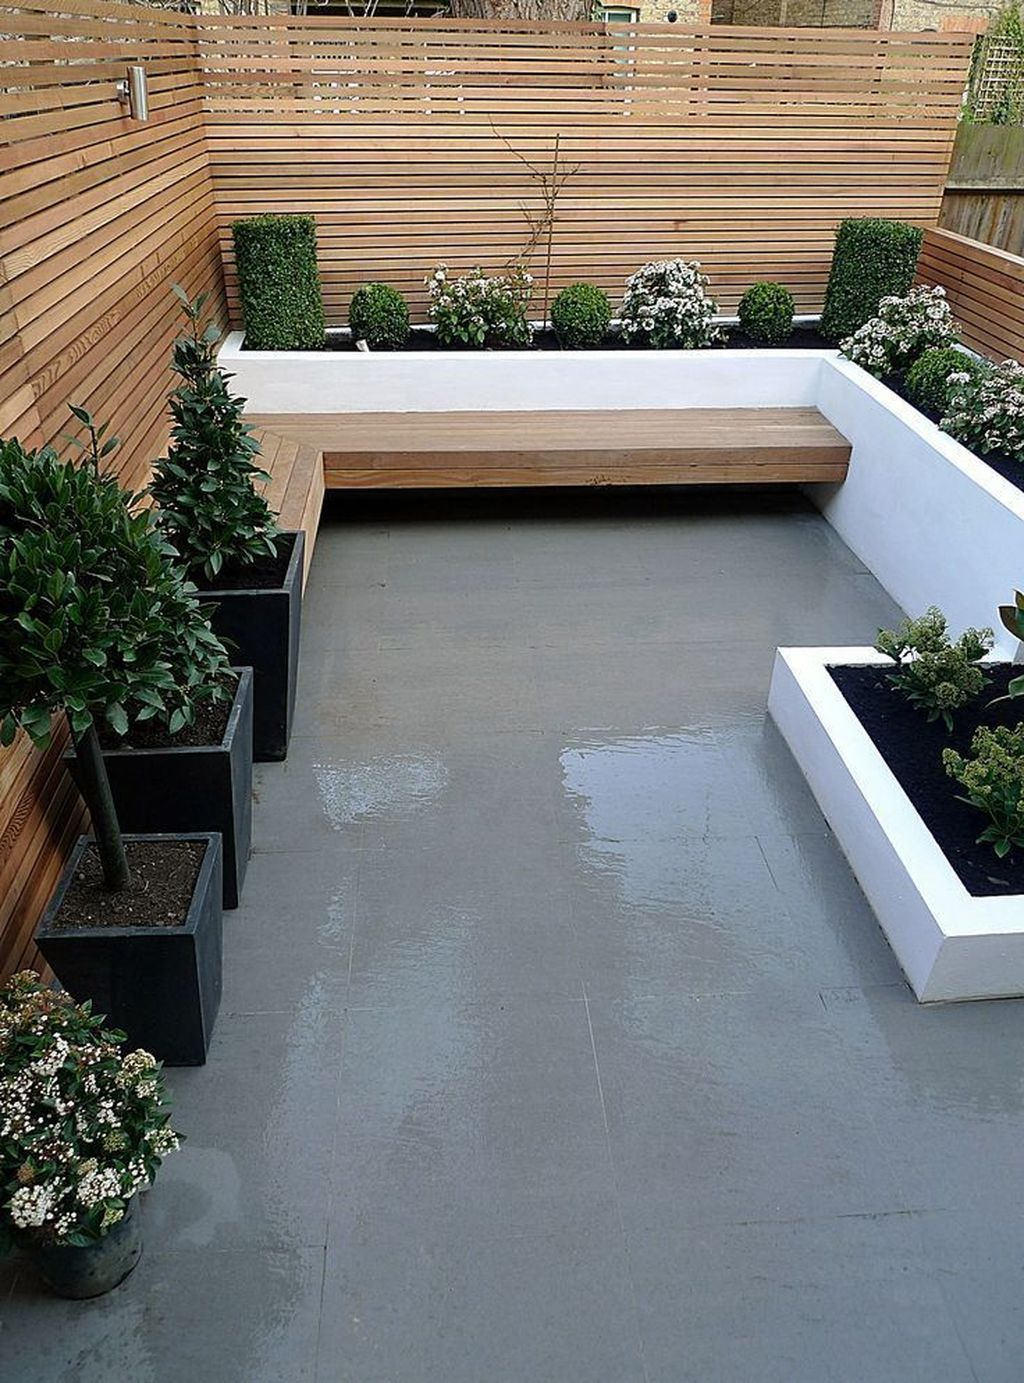 20+ #Minimalist #Garden #Design #Ideas #For #Small #Garden